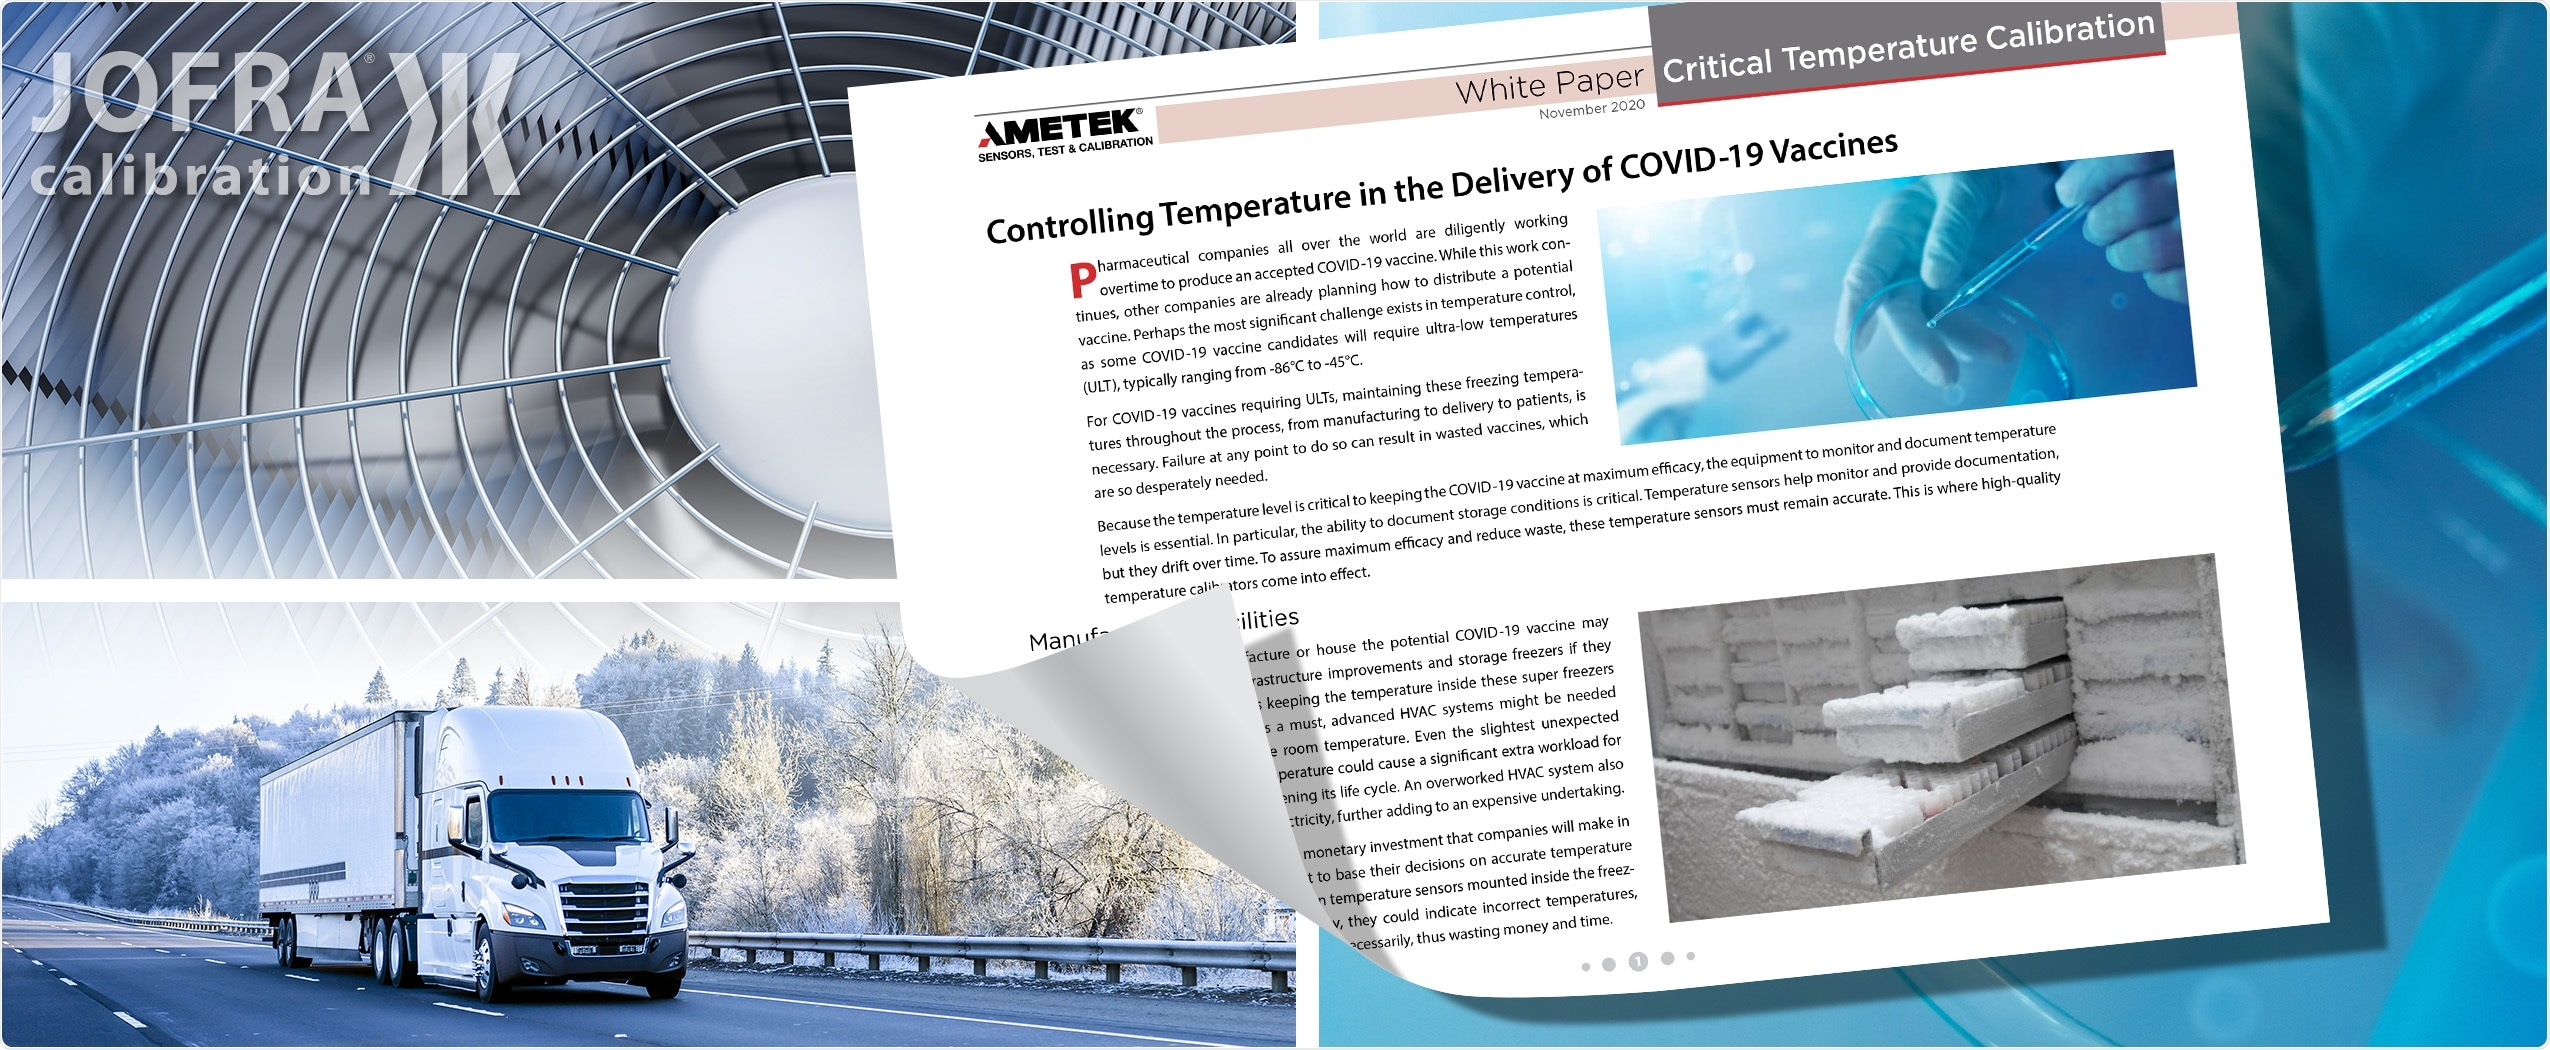 Controlling Temperature in the Delivery of COVID-19 Vaccines – News-Medical.Net